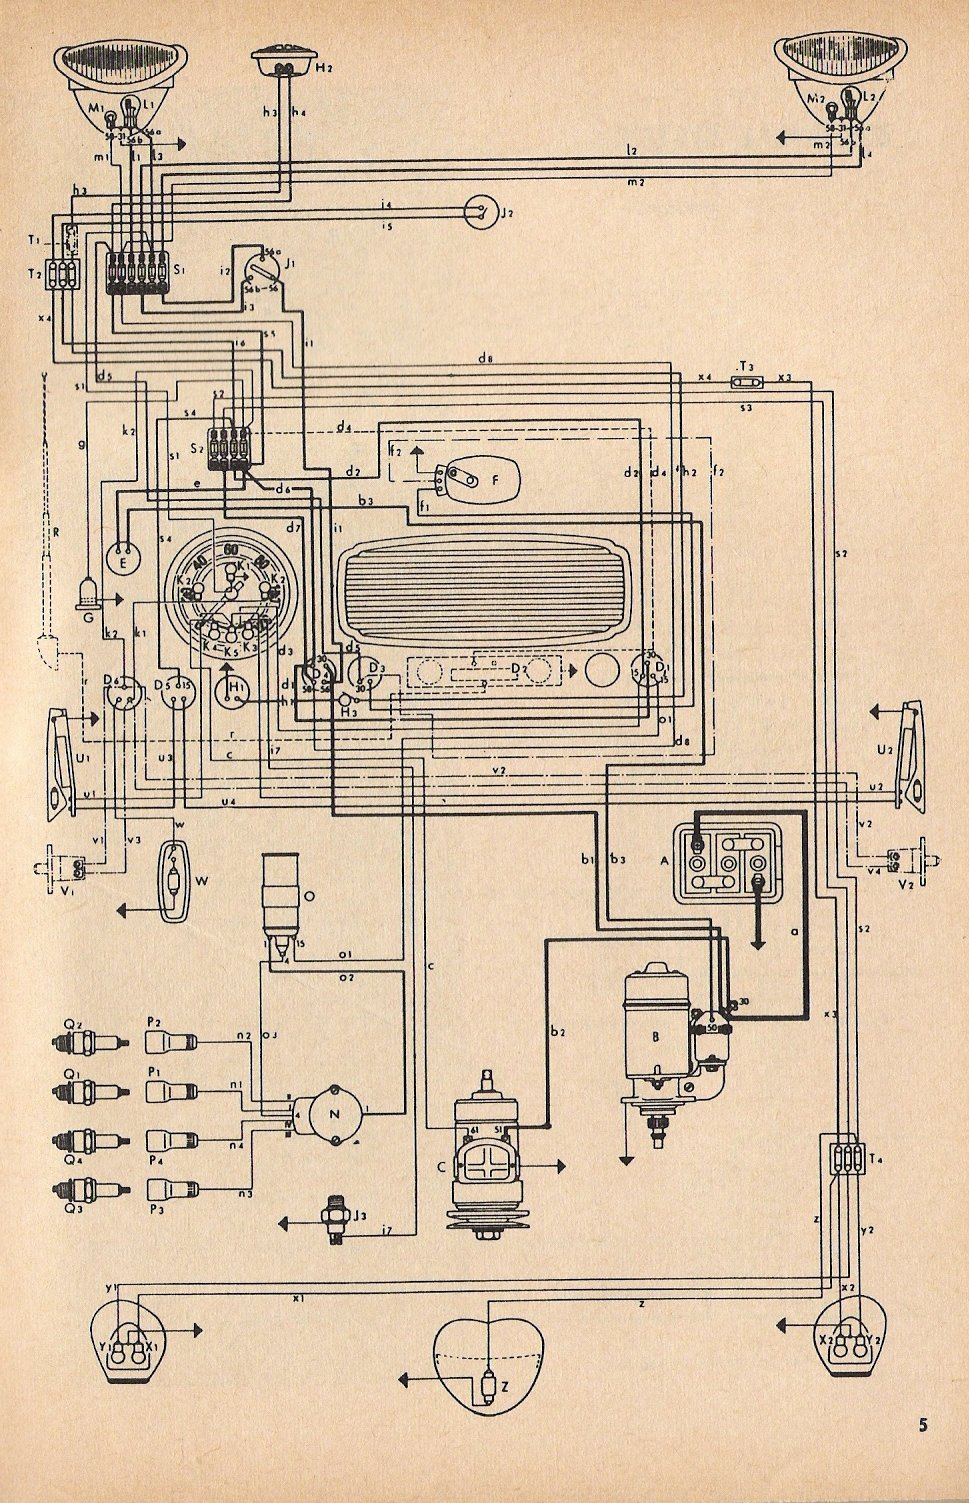 1961 Vw Beetle Engine Wiring Diagram Library 1974